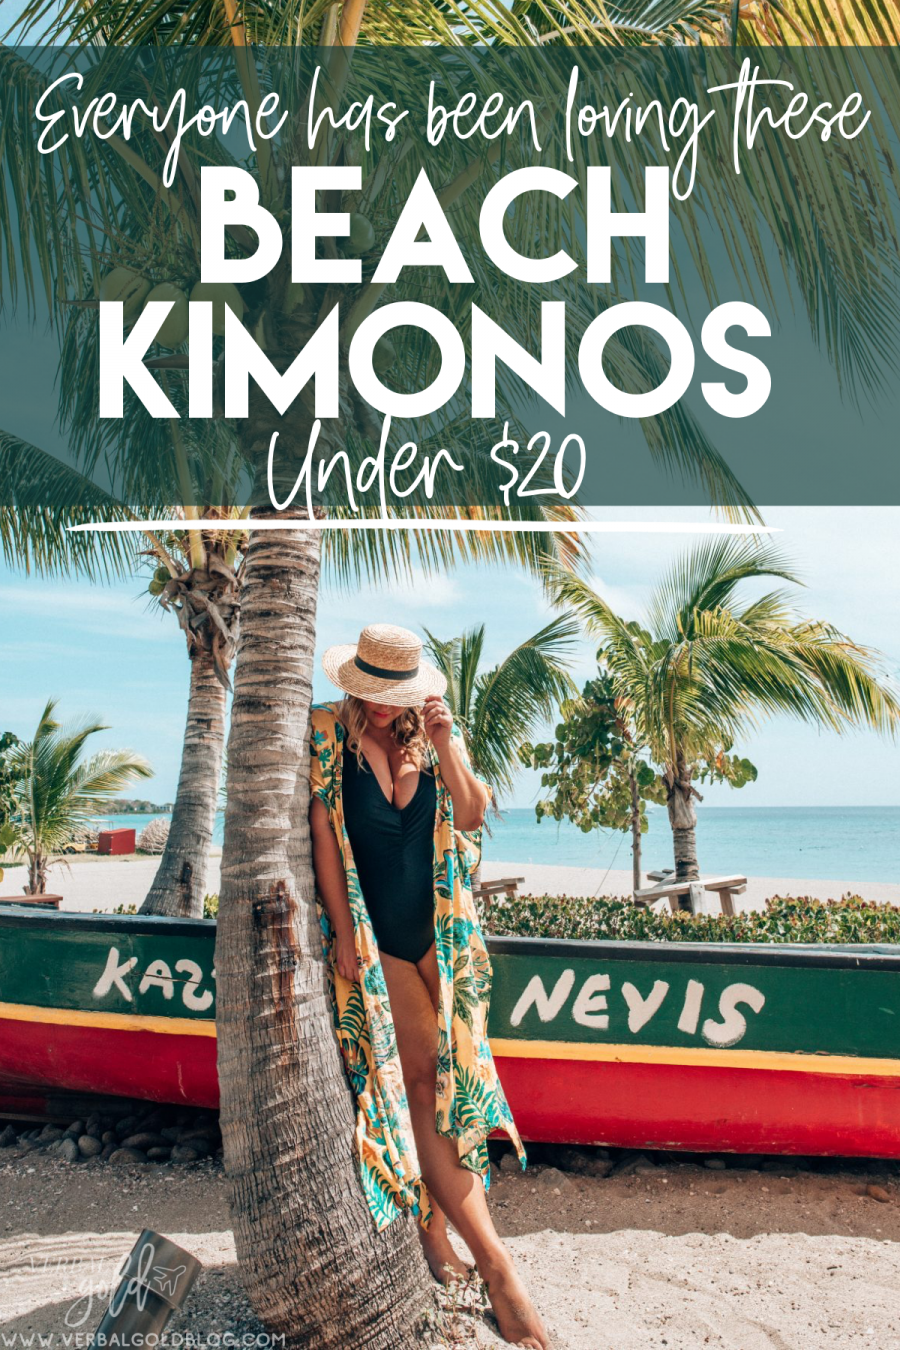 The best beach kimonos for your next holiday! These are the perfect outfits for a cruise holiday, a beach vacation, or a romantic resort staycation!